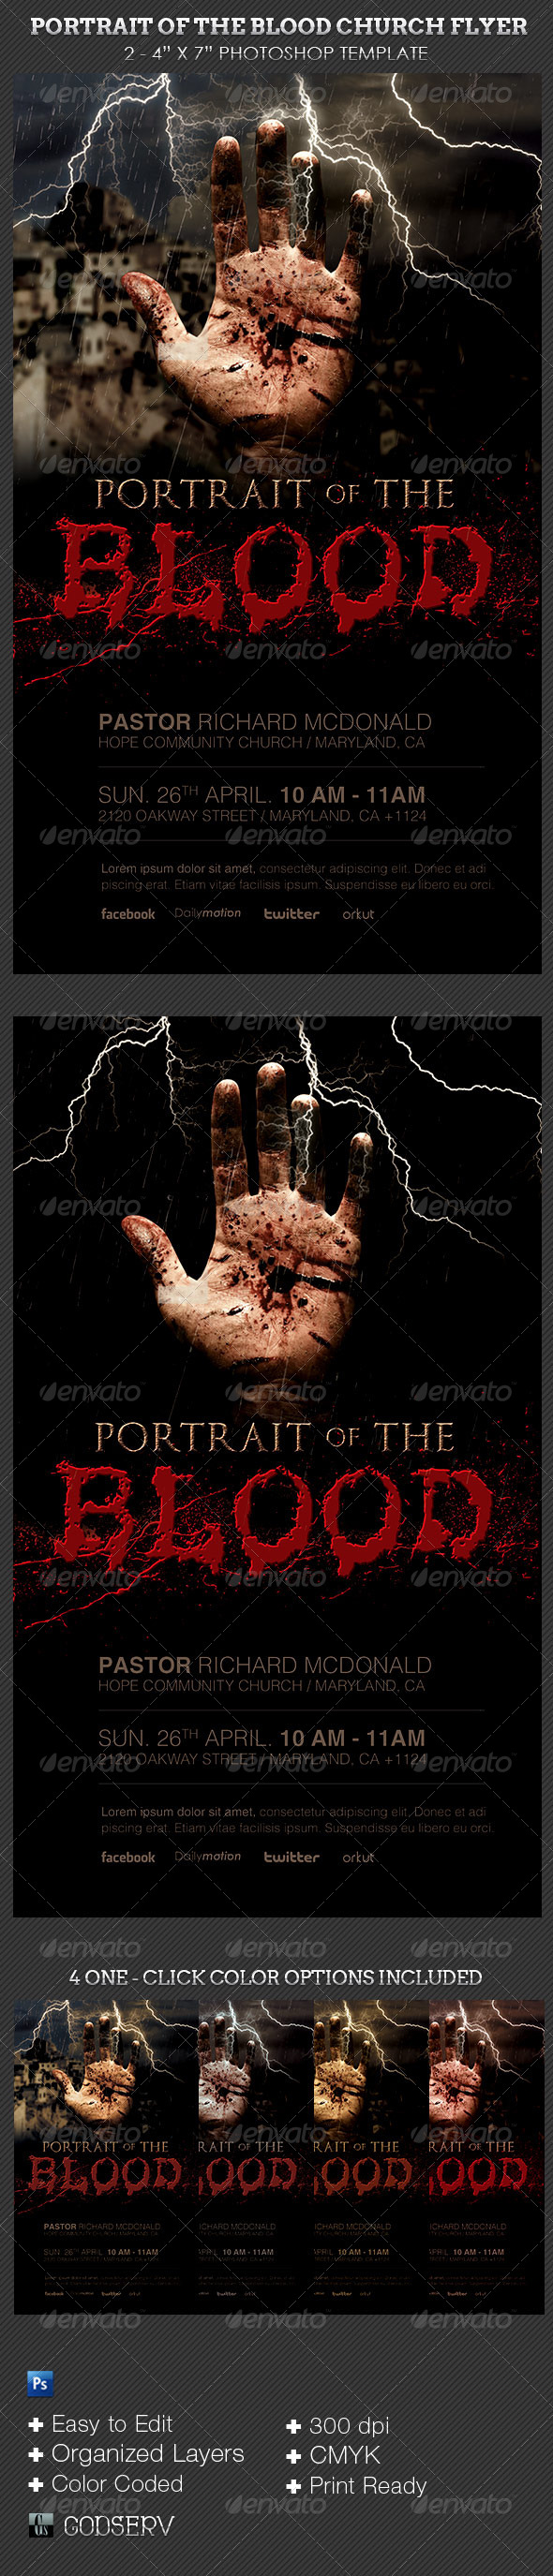 Blood Portrait Church Flyer Template - Church Flyers